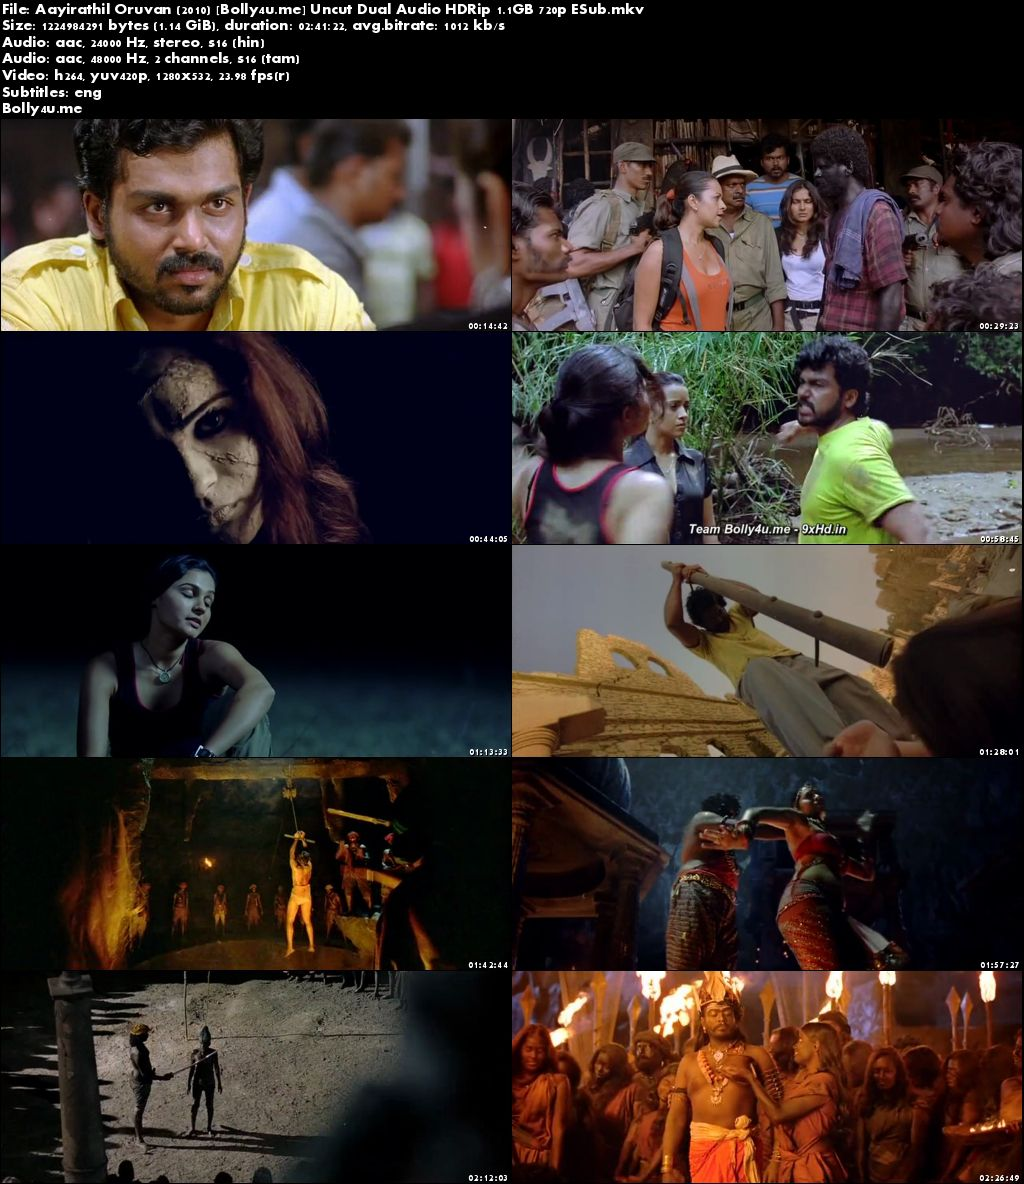 Aayirathil Oruvan 2010 HDRip UNCUT Hindi Dual Audio 720p ESub Download